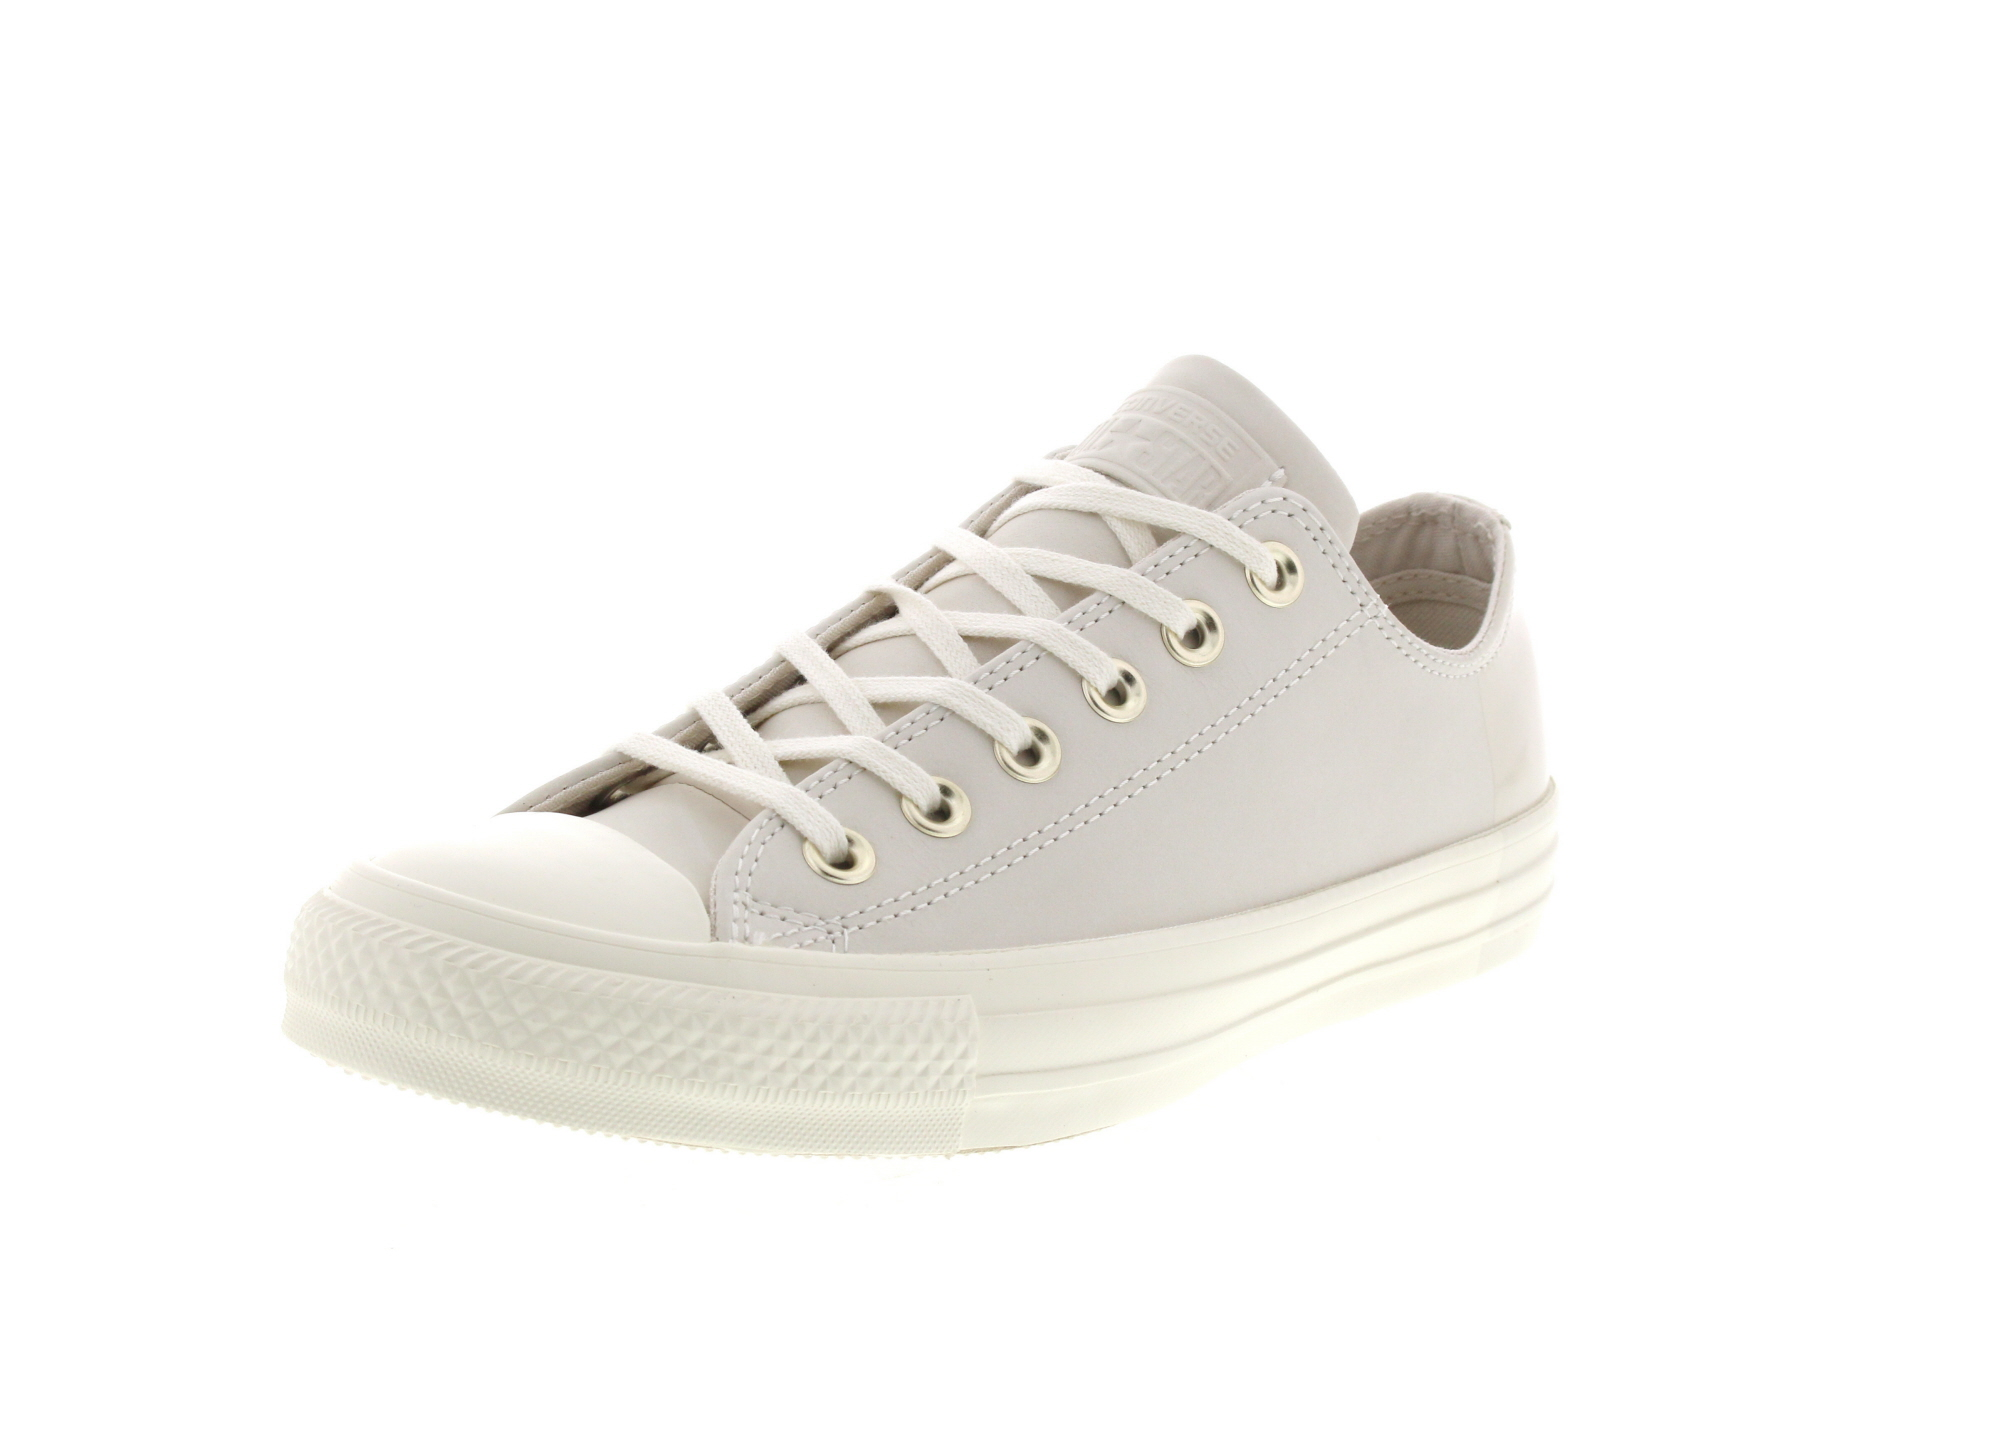 CONVERSE Sneakers - CTAS OX 159528C - egret driftwood_0